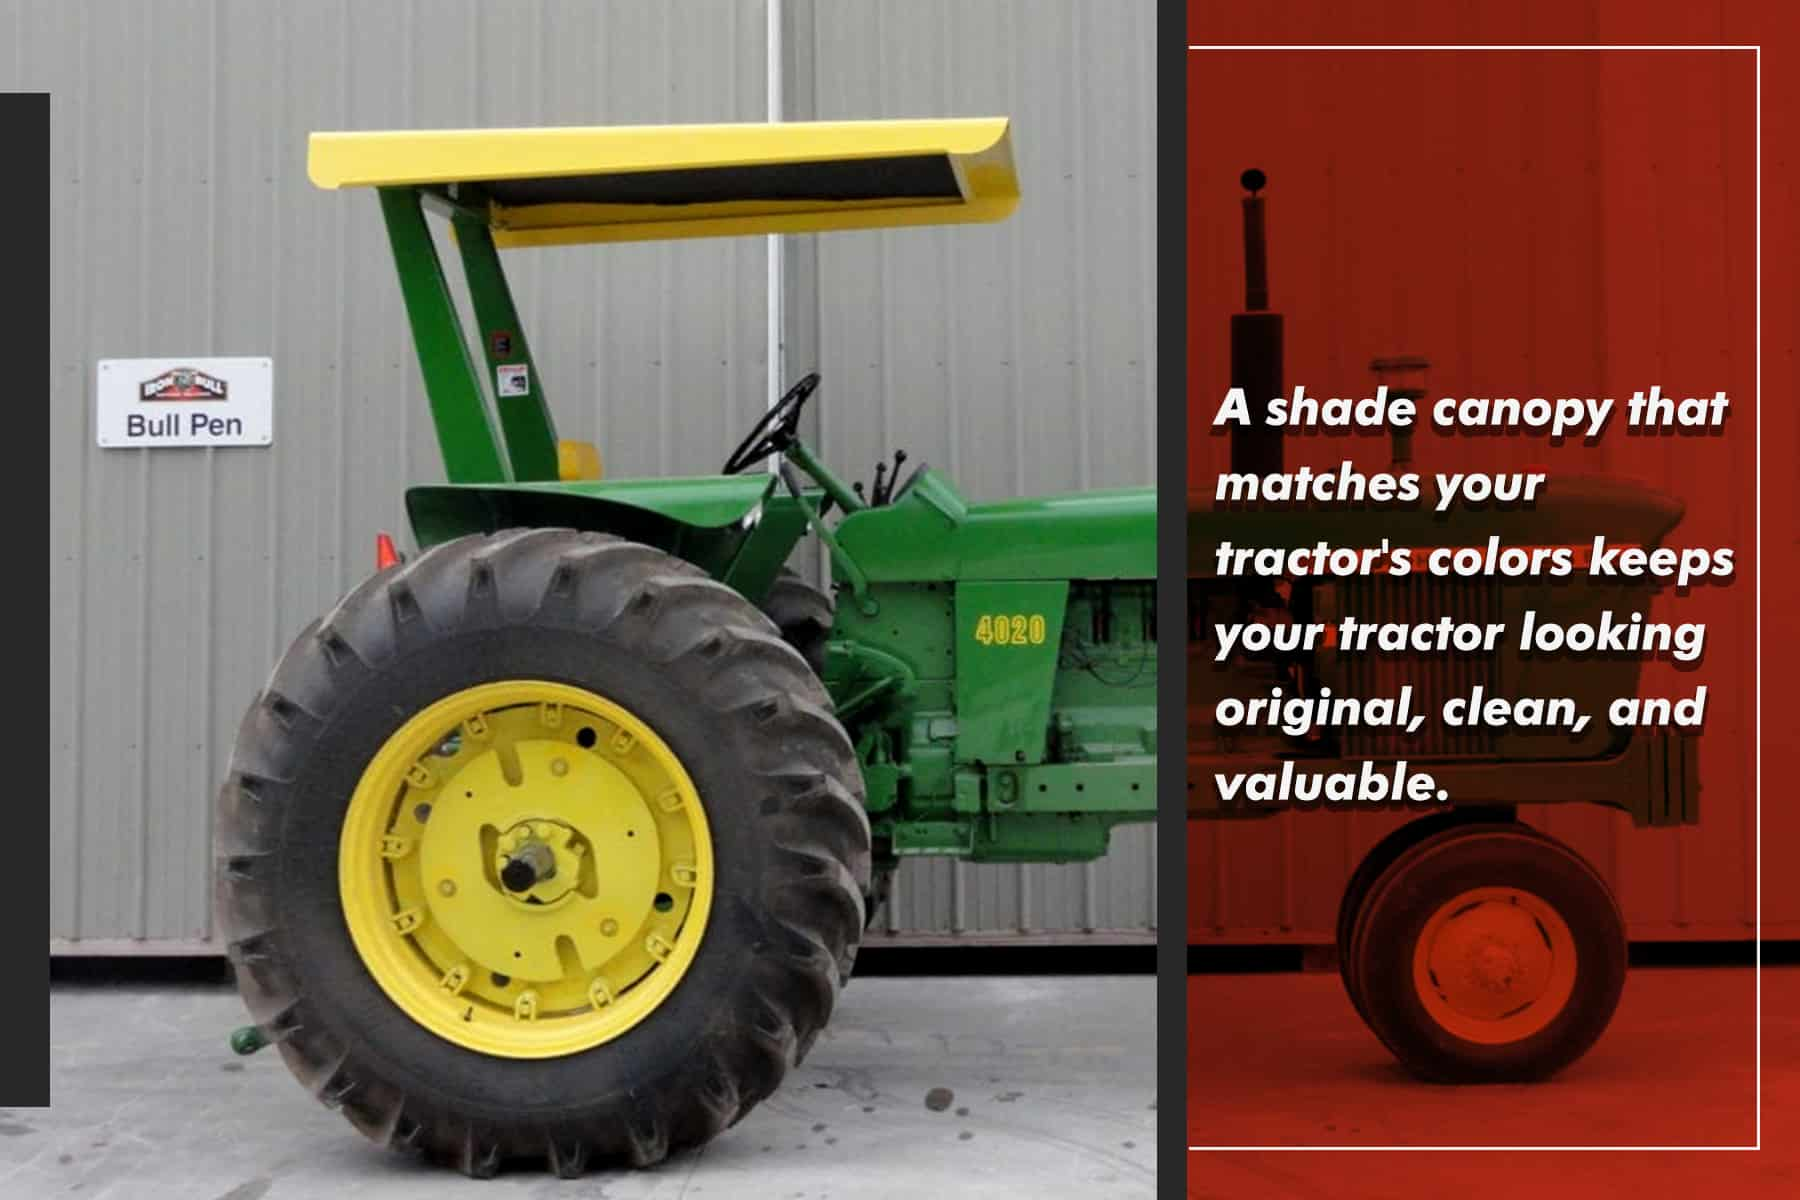 shade canopies should match your tractor's style and colors